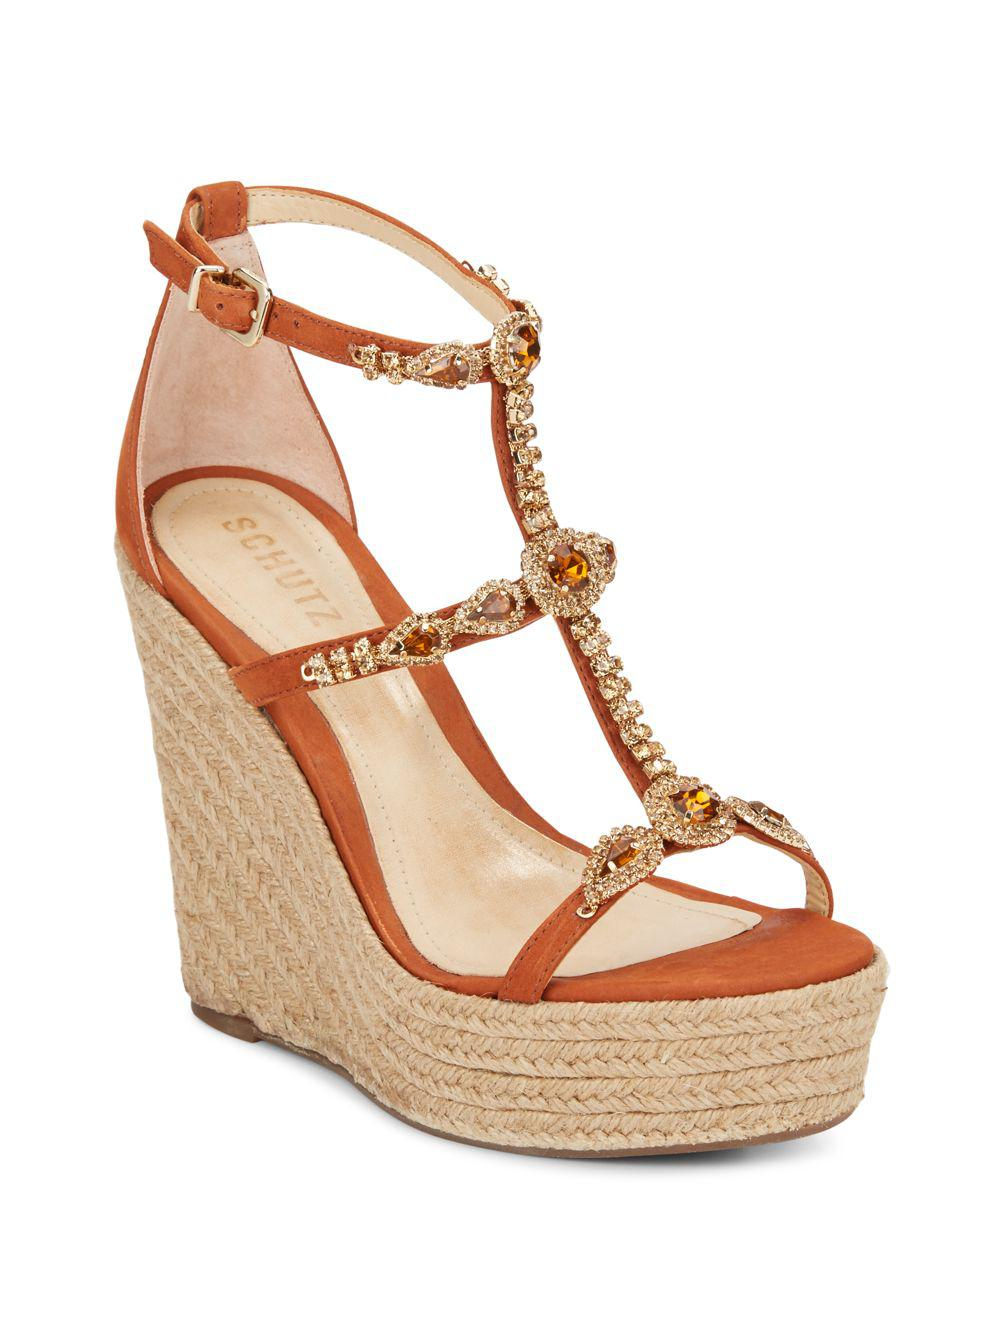 fake sale online Schutz Suede Embellished Wedges free shipping 2014 new cheap popular ap4szpMhq